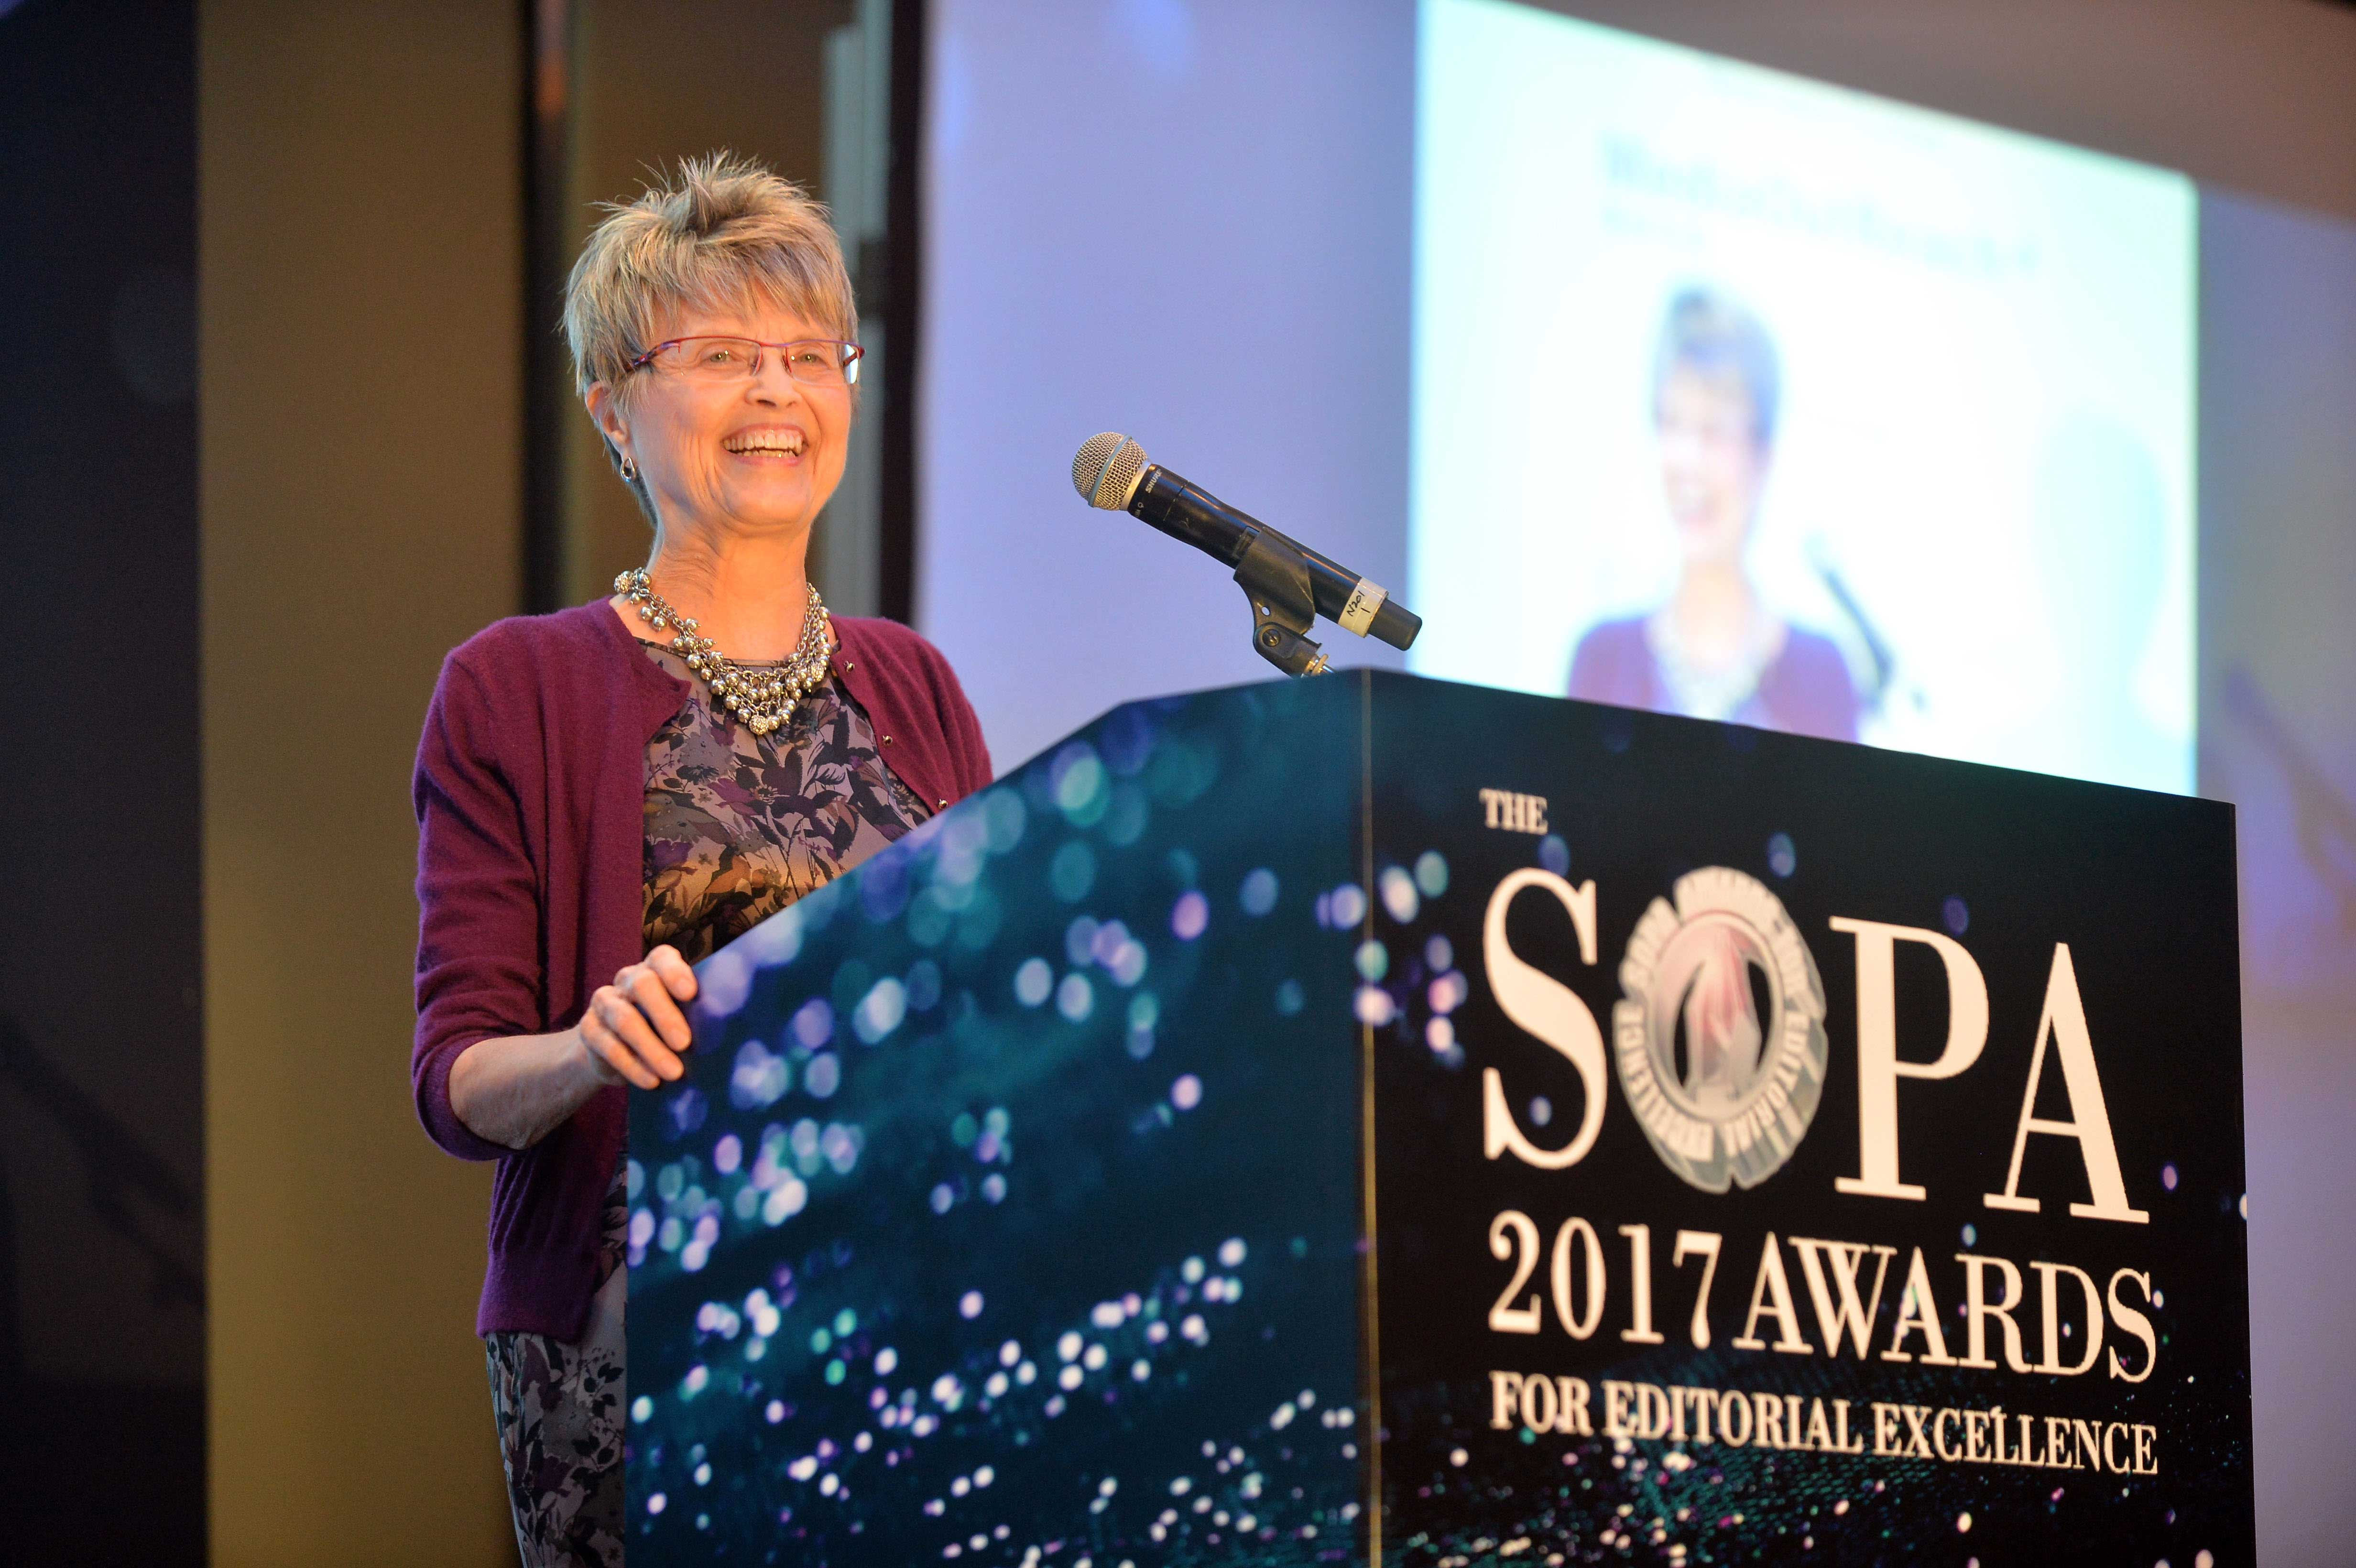 SK Witcher at the 2017 SOPA Awards.